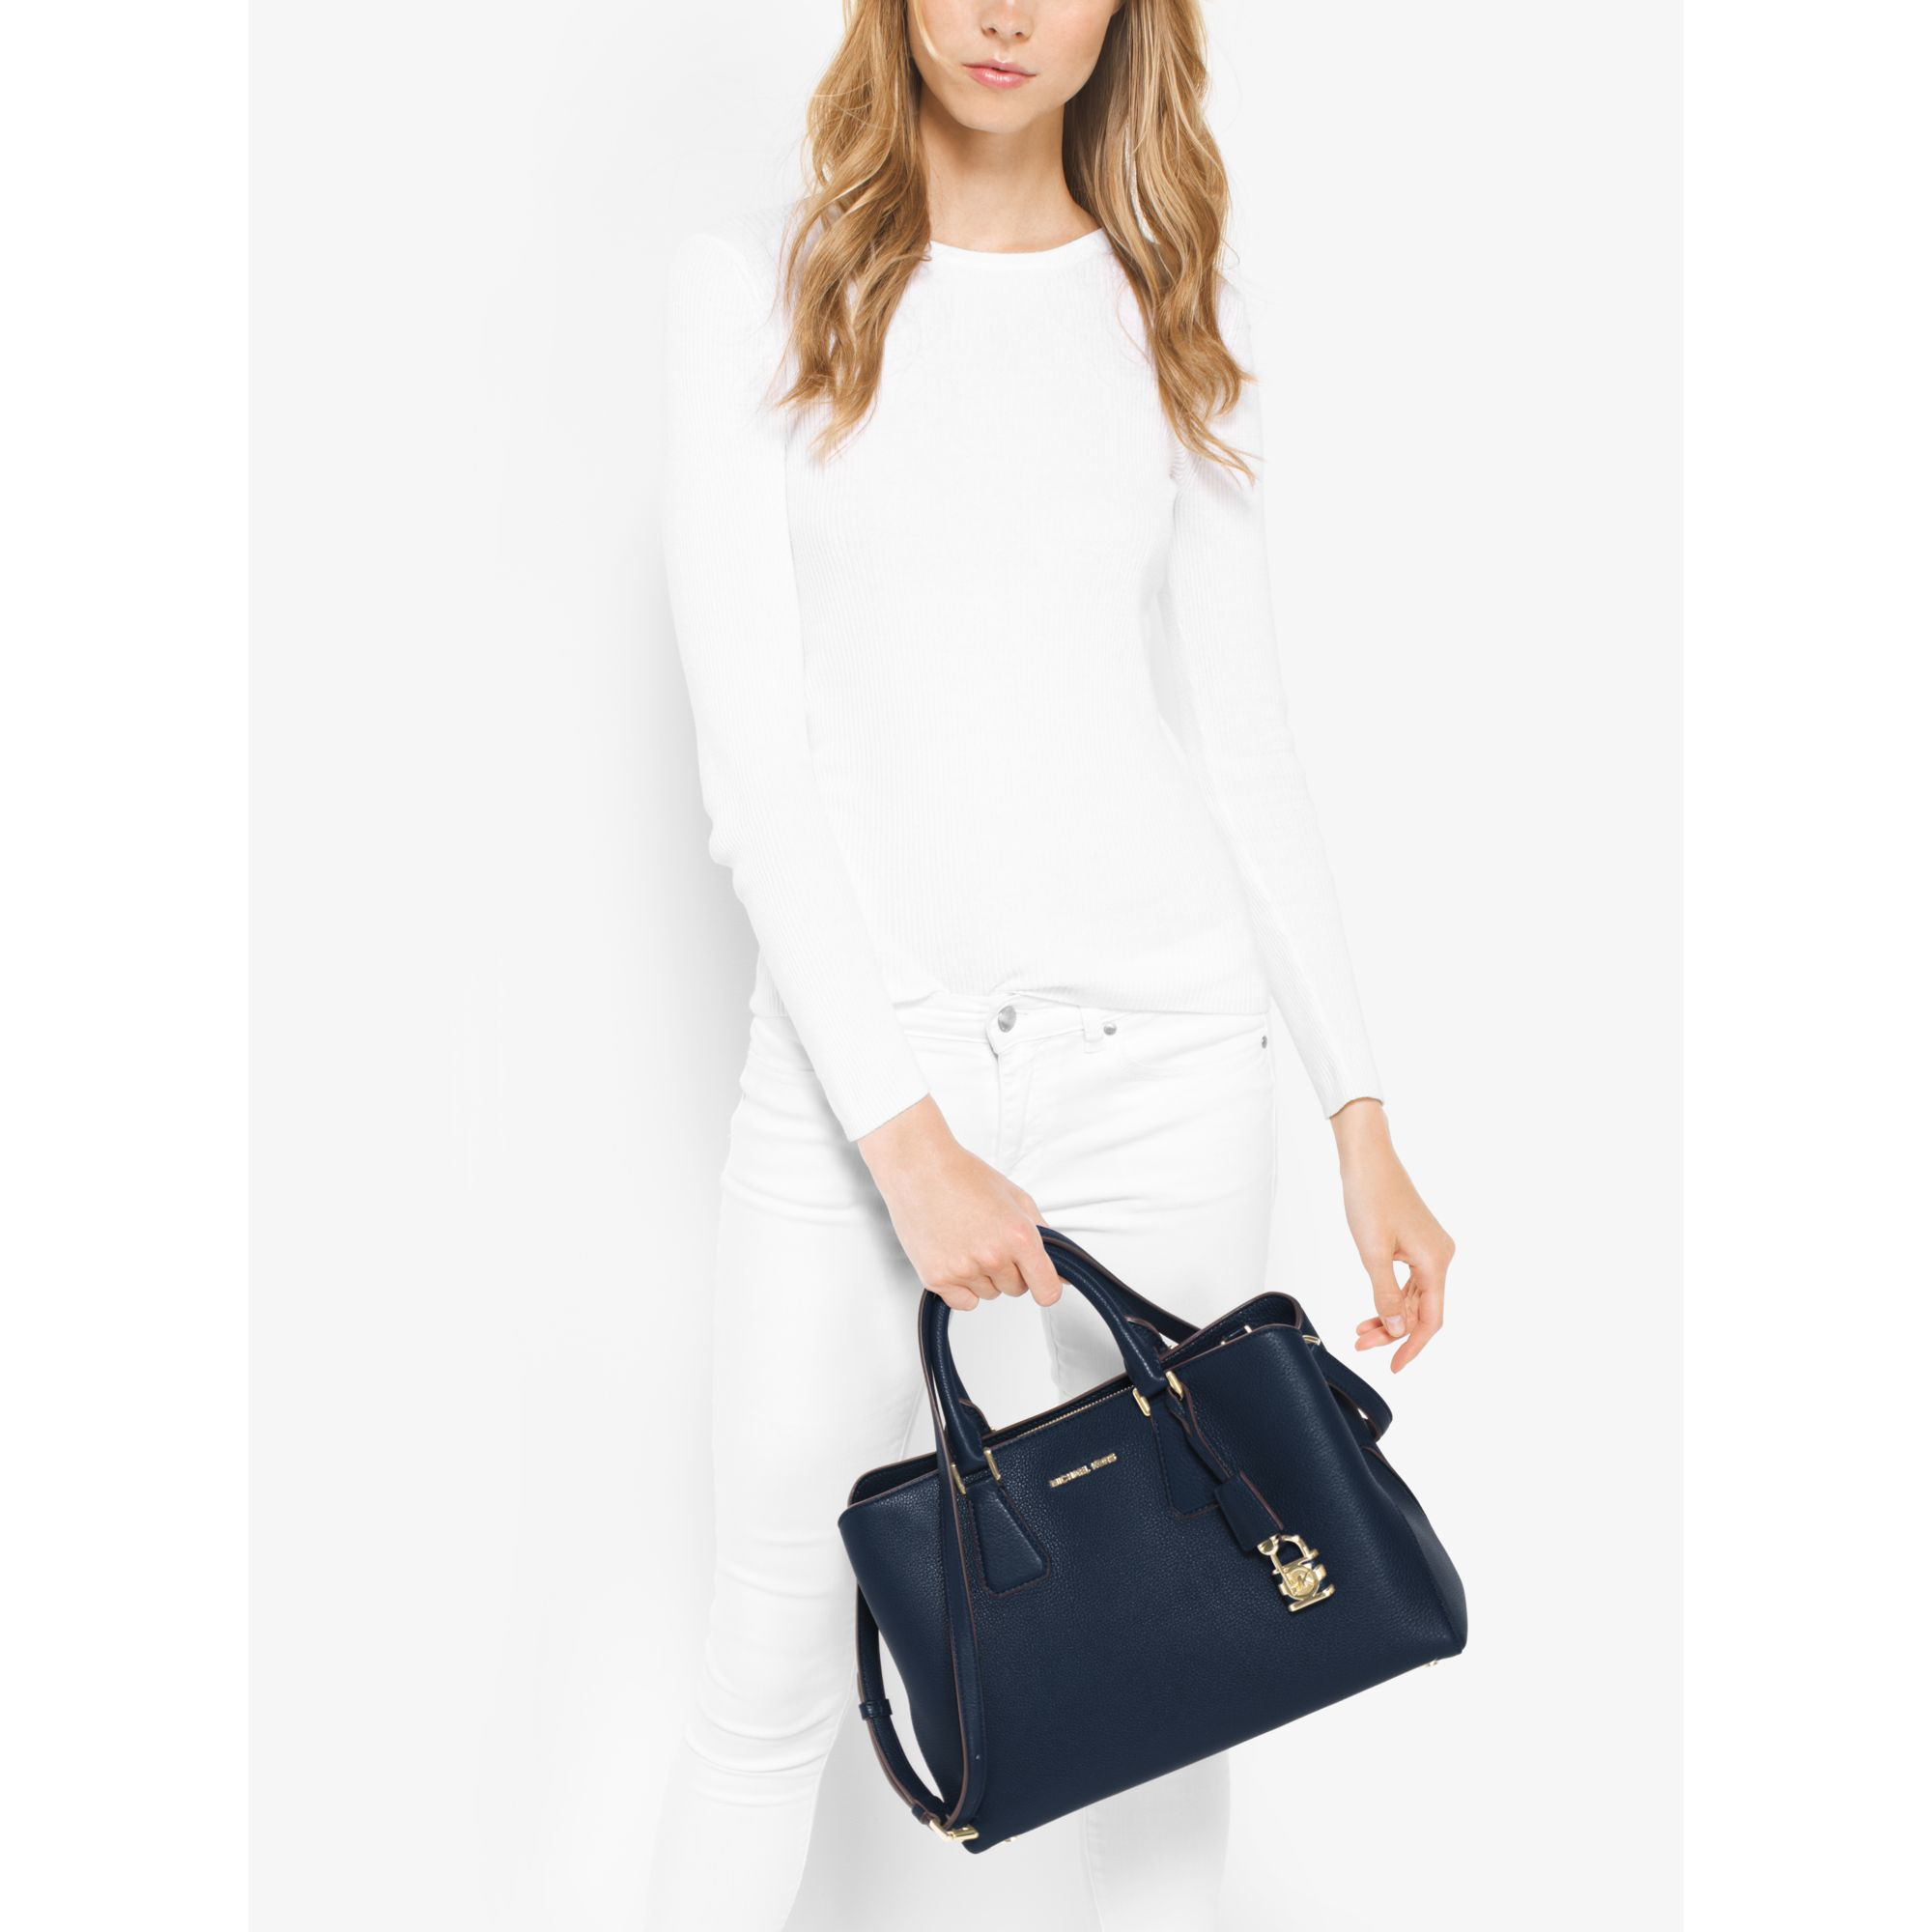 a77abb4e9f5b Michael Kors Camille Large Leather Satchel in Blue - Lyst